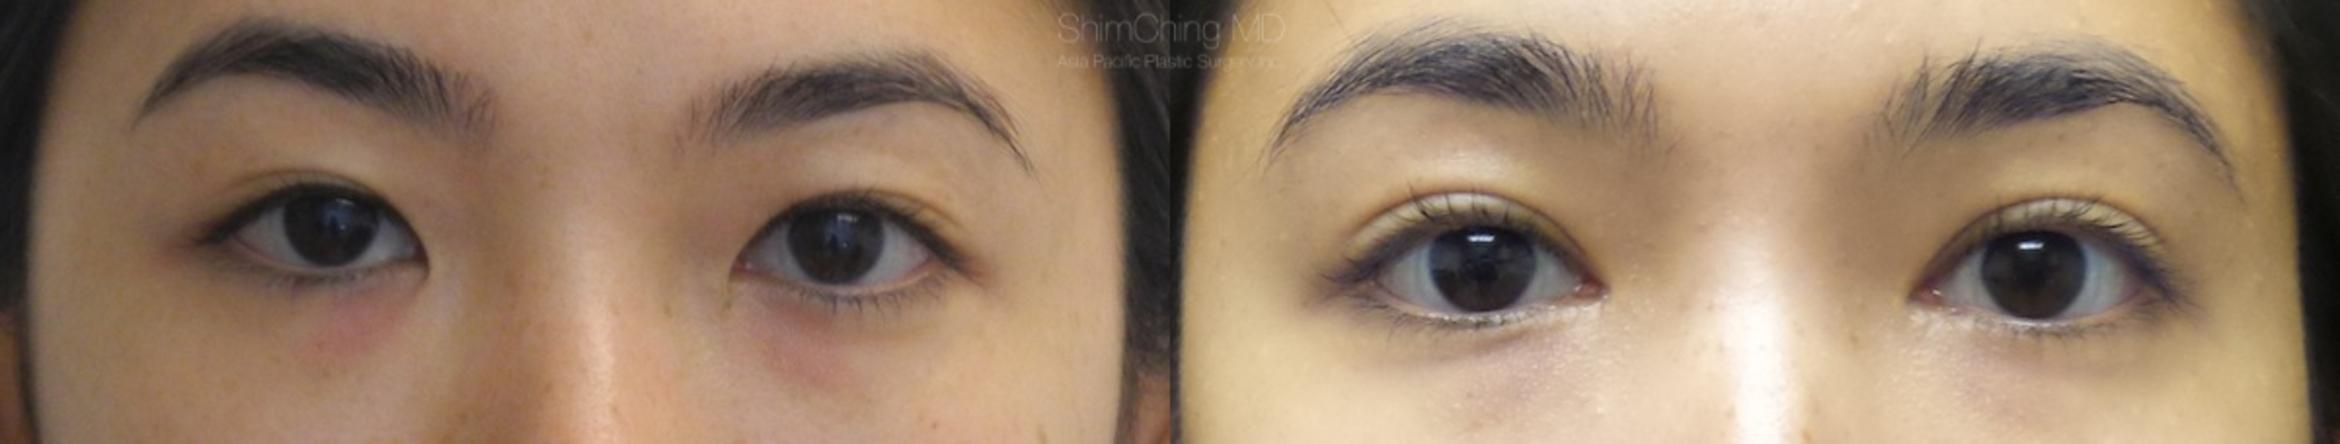 Asian Eyelid Case 3 Before & After View #1 | Honolulu, HI | Shim Ching, MD: Asia Pacific Plastic Surgery